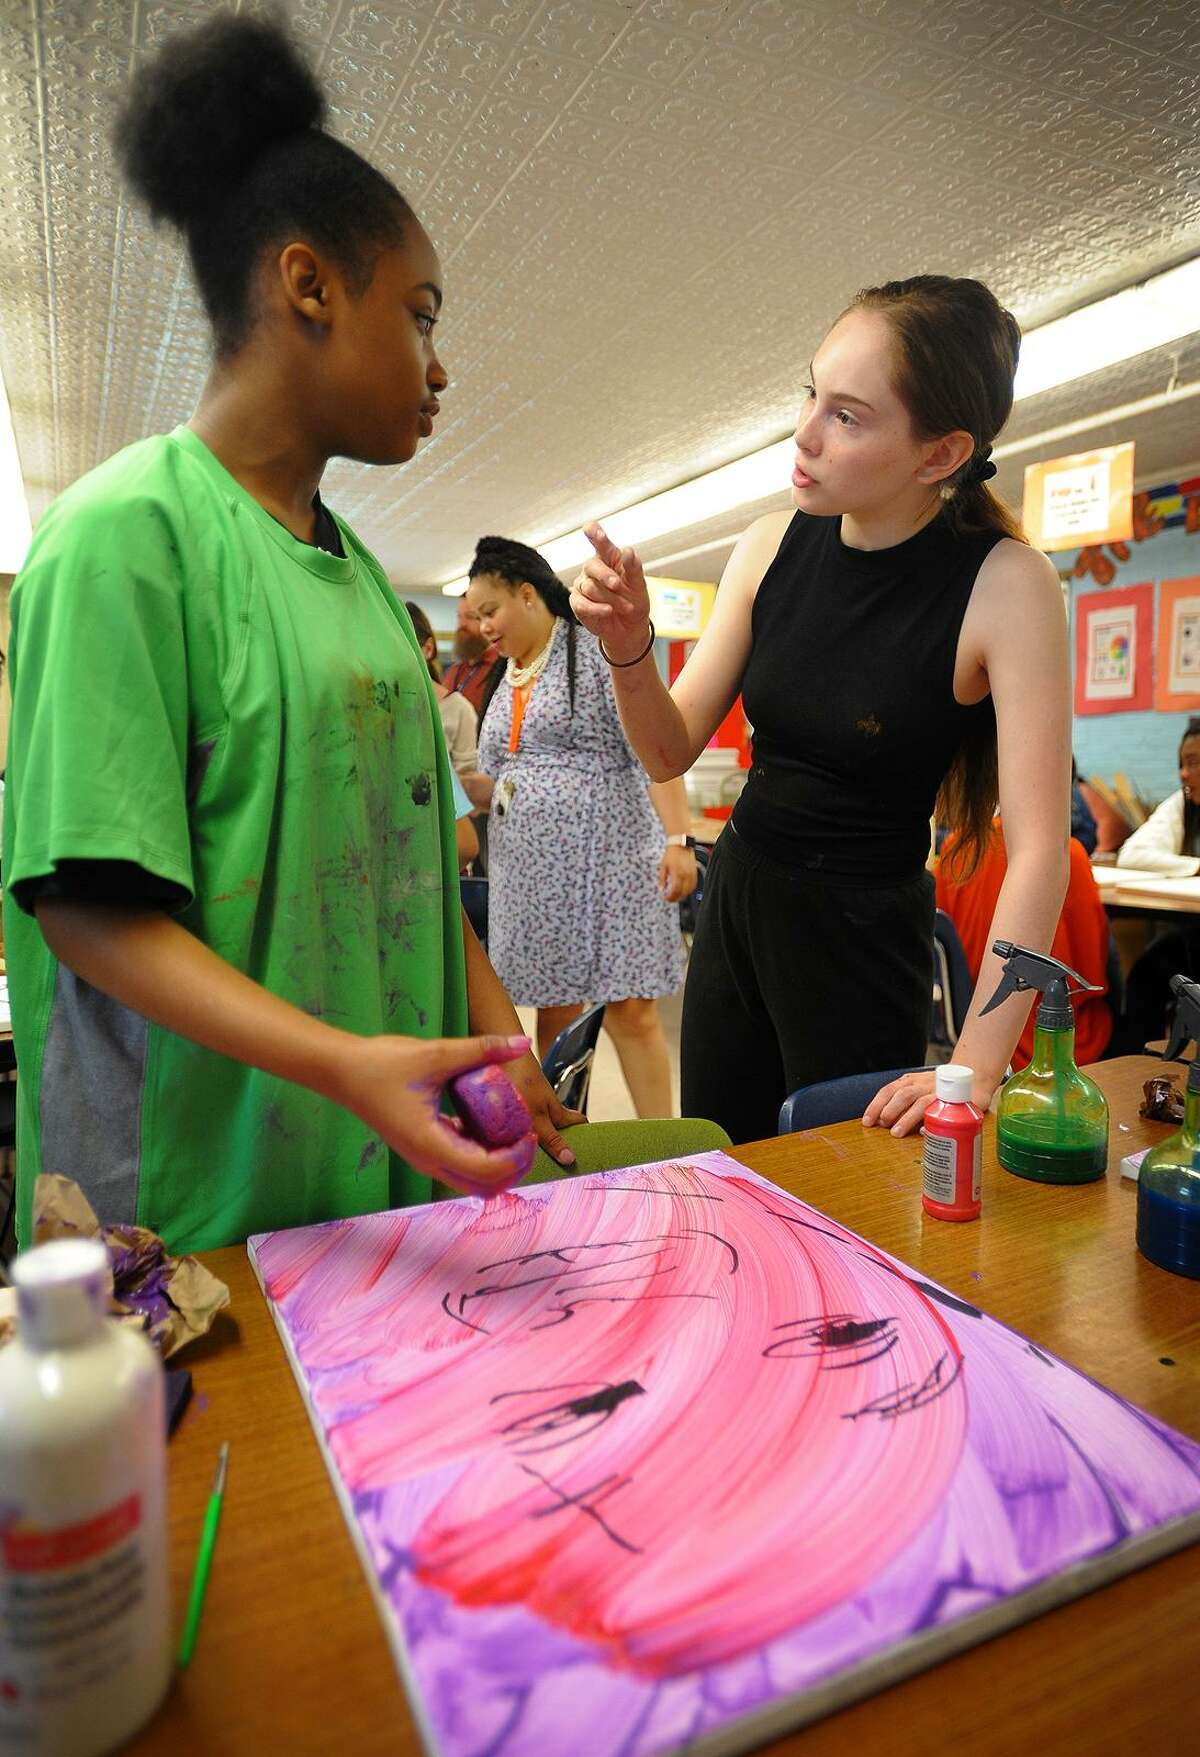 Turnaround Arts program artist Autumn DeForest, of Las Vegas, Nevada, helps 6th grader Chelsea McLaren, 12, make a self portrait during a visit to Hallen School in Bridgeport, Conn. on Tuesday, June 12, 2018.